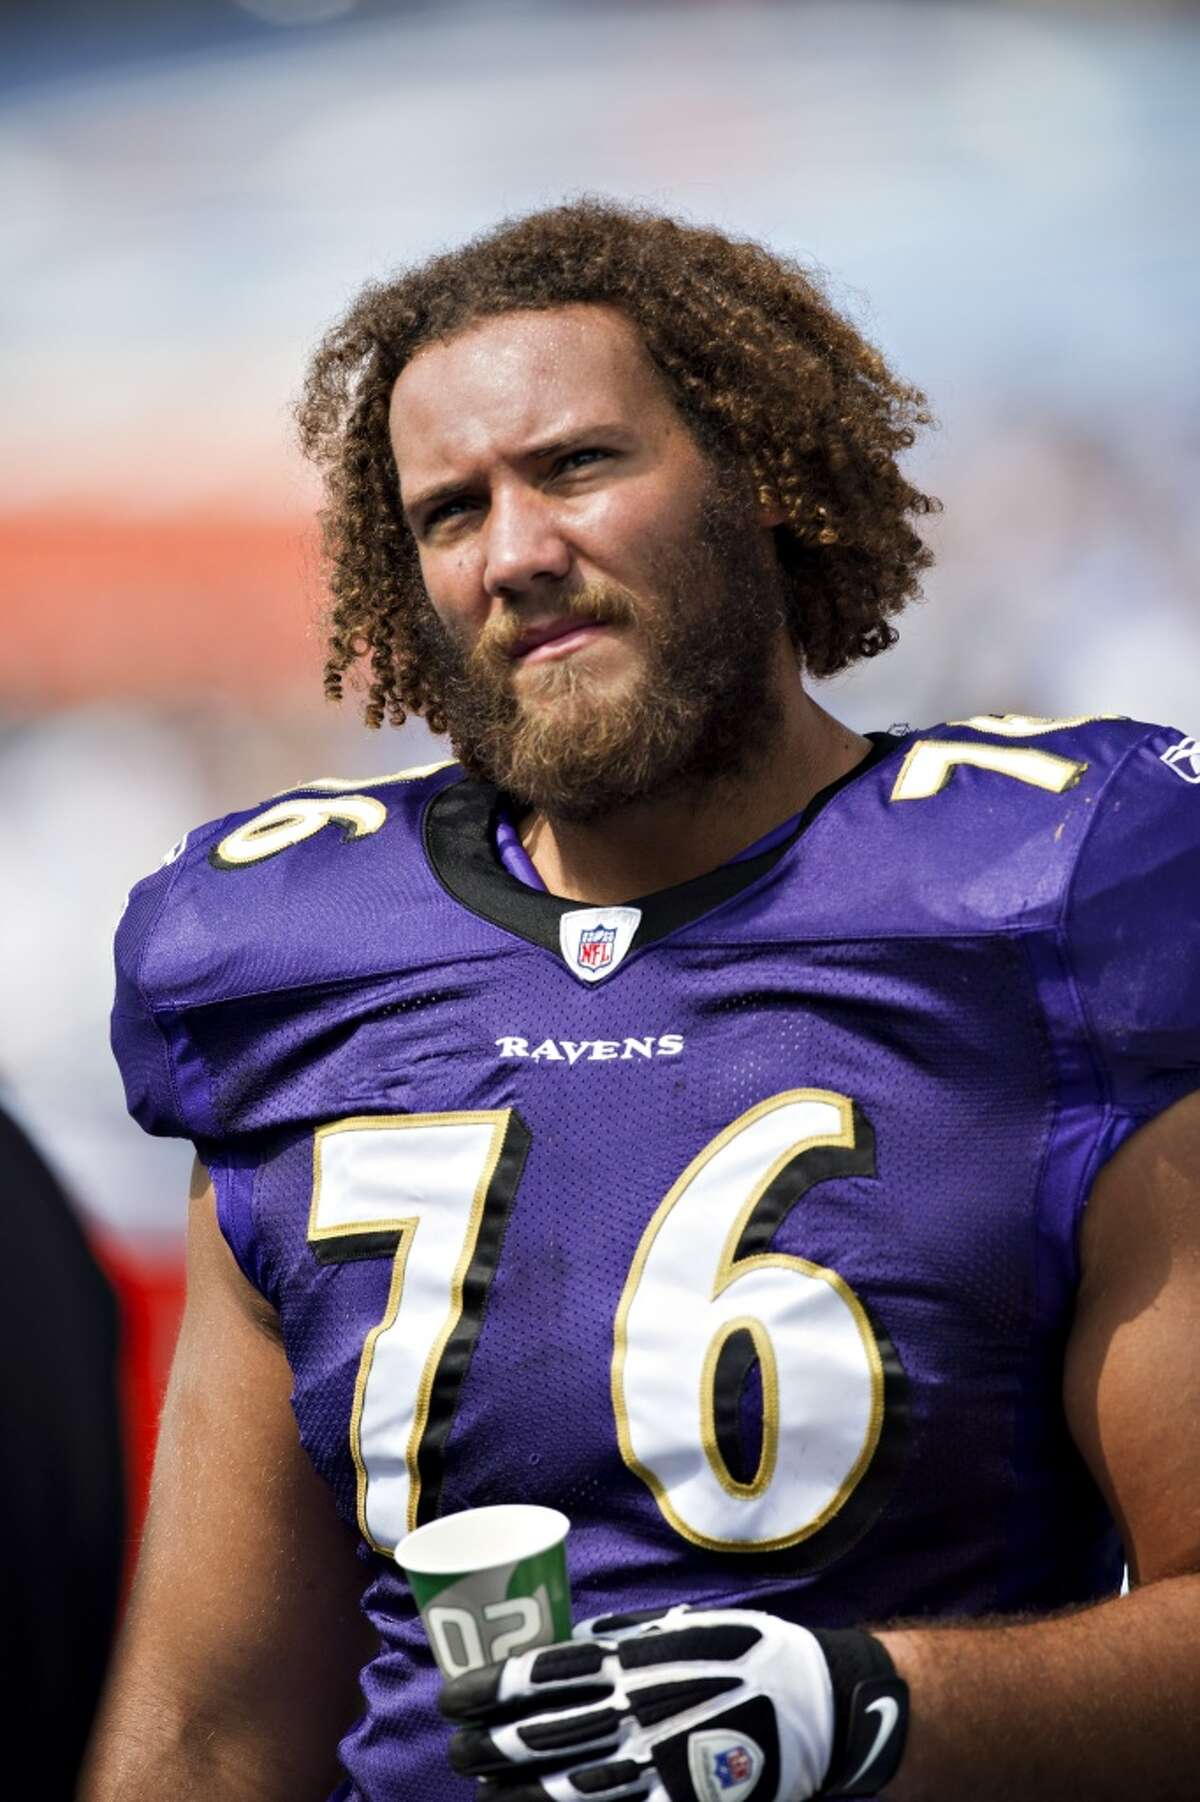 Baltimore Ravens offensive lineman Jah Reid was arrested on March 9 for two misdemeanor charges of battery in Key West, Florida. Reid and another man got into a fight with others at a strip club.